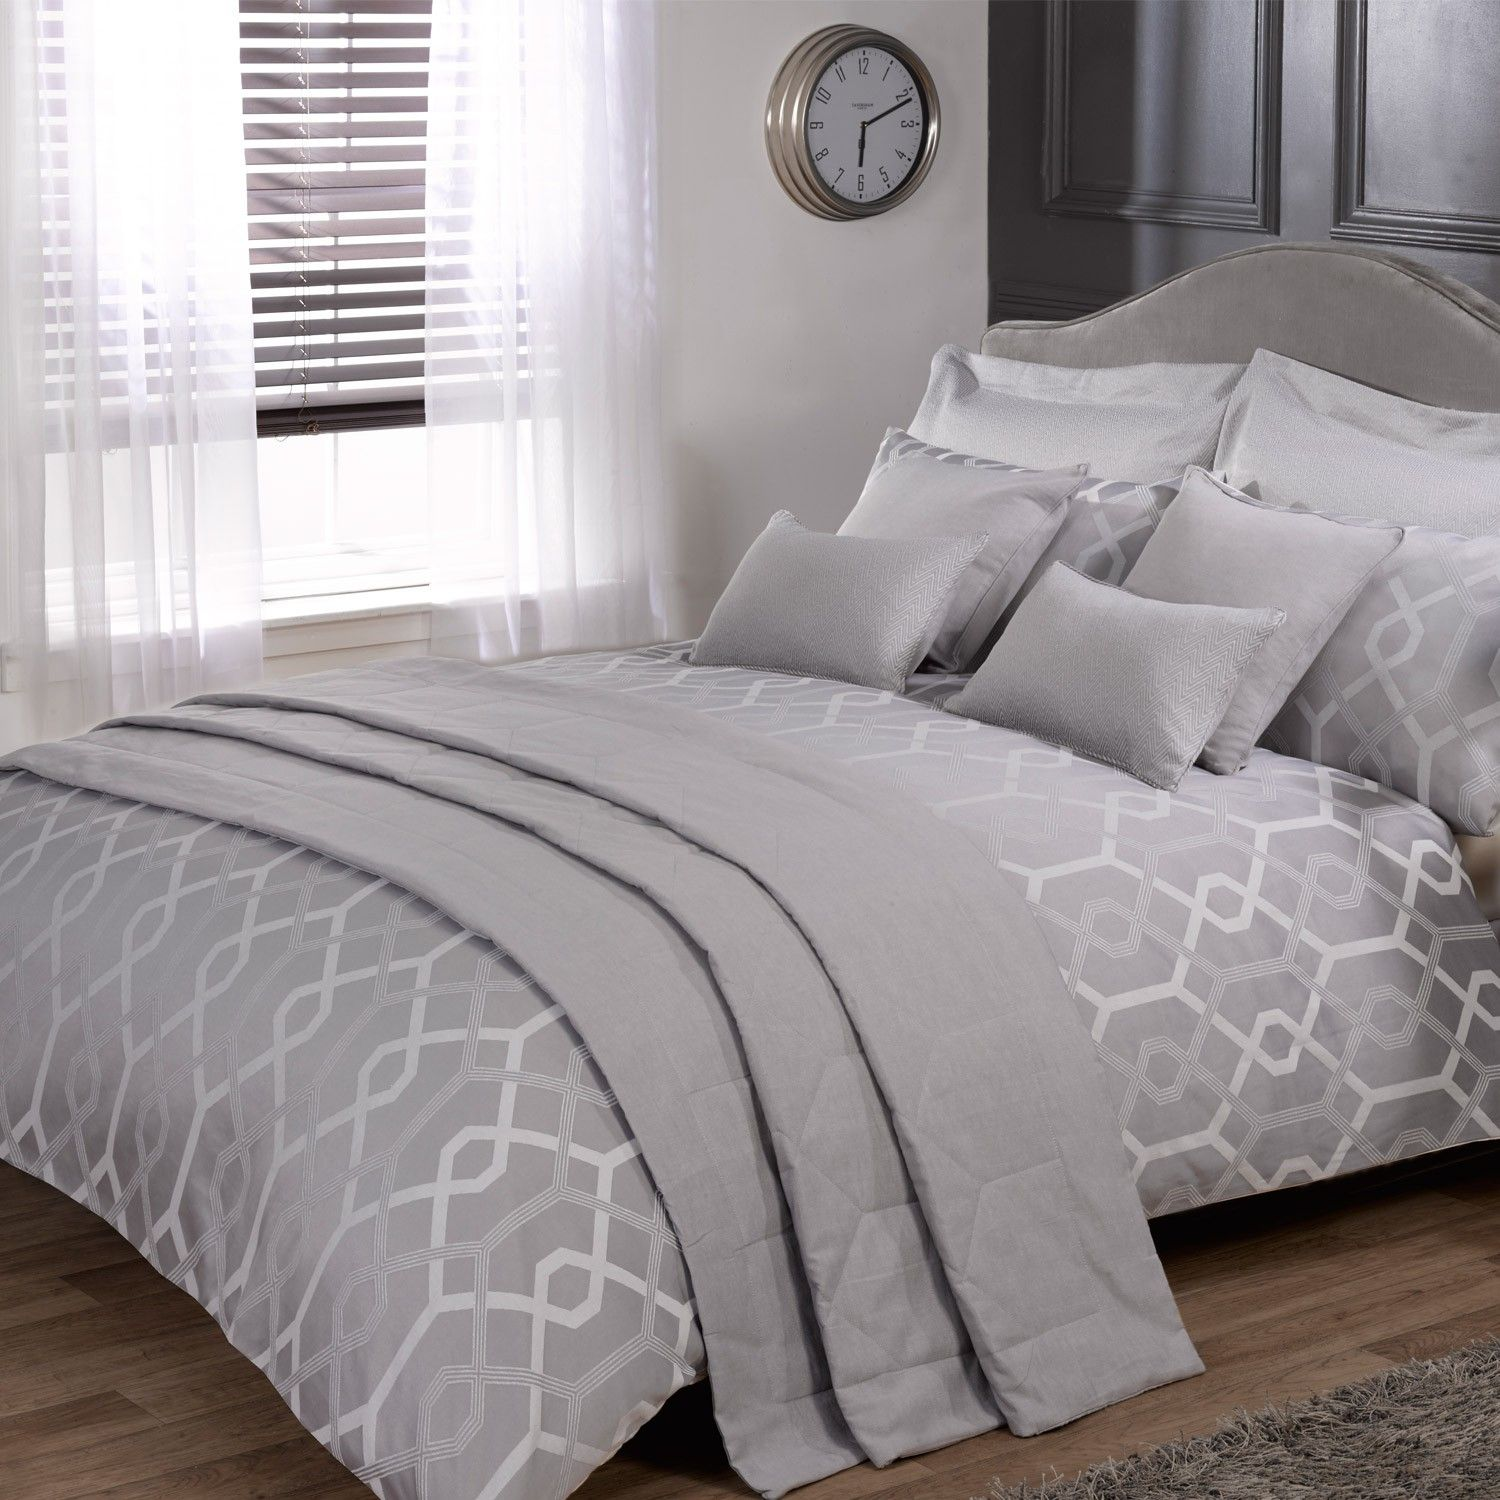 Harrison Silver Luxury Quilted Throw Bed Throws Type Bedding From Grey Sheetsgrey Sheets There Is One Room In